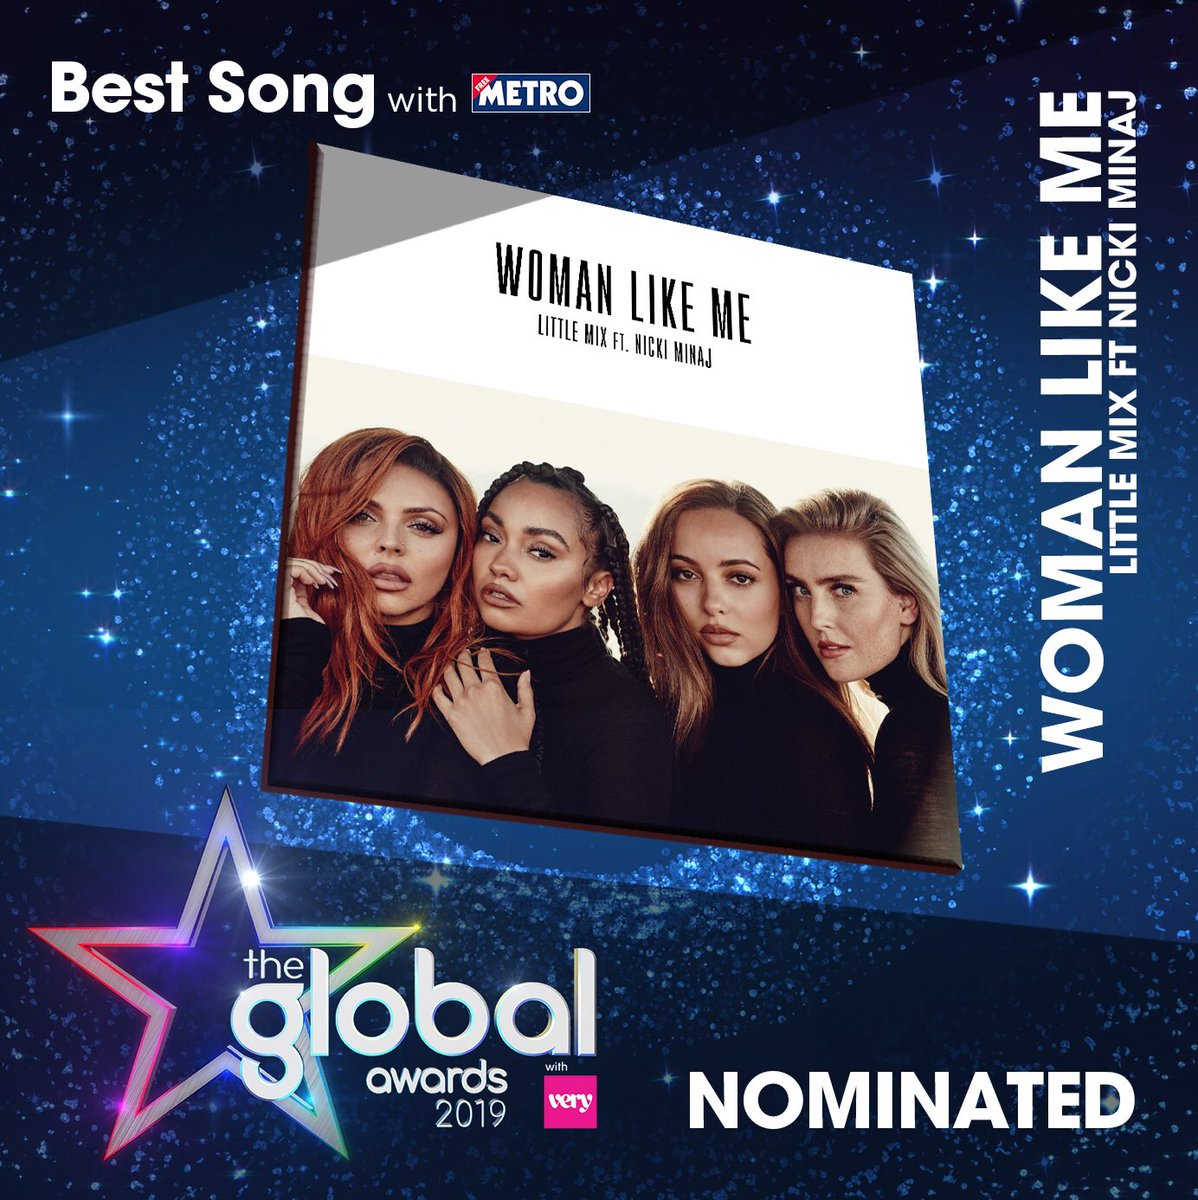 What an amazing couple of days!!! We're nominated for Best Group and Best Song, thank you #TheGlobalAwards! ❤❤❤💃🏼💃🏼💃🏼  Get voting now at https://t.co/QQ0eH1f6Ix the girls x